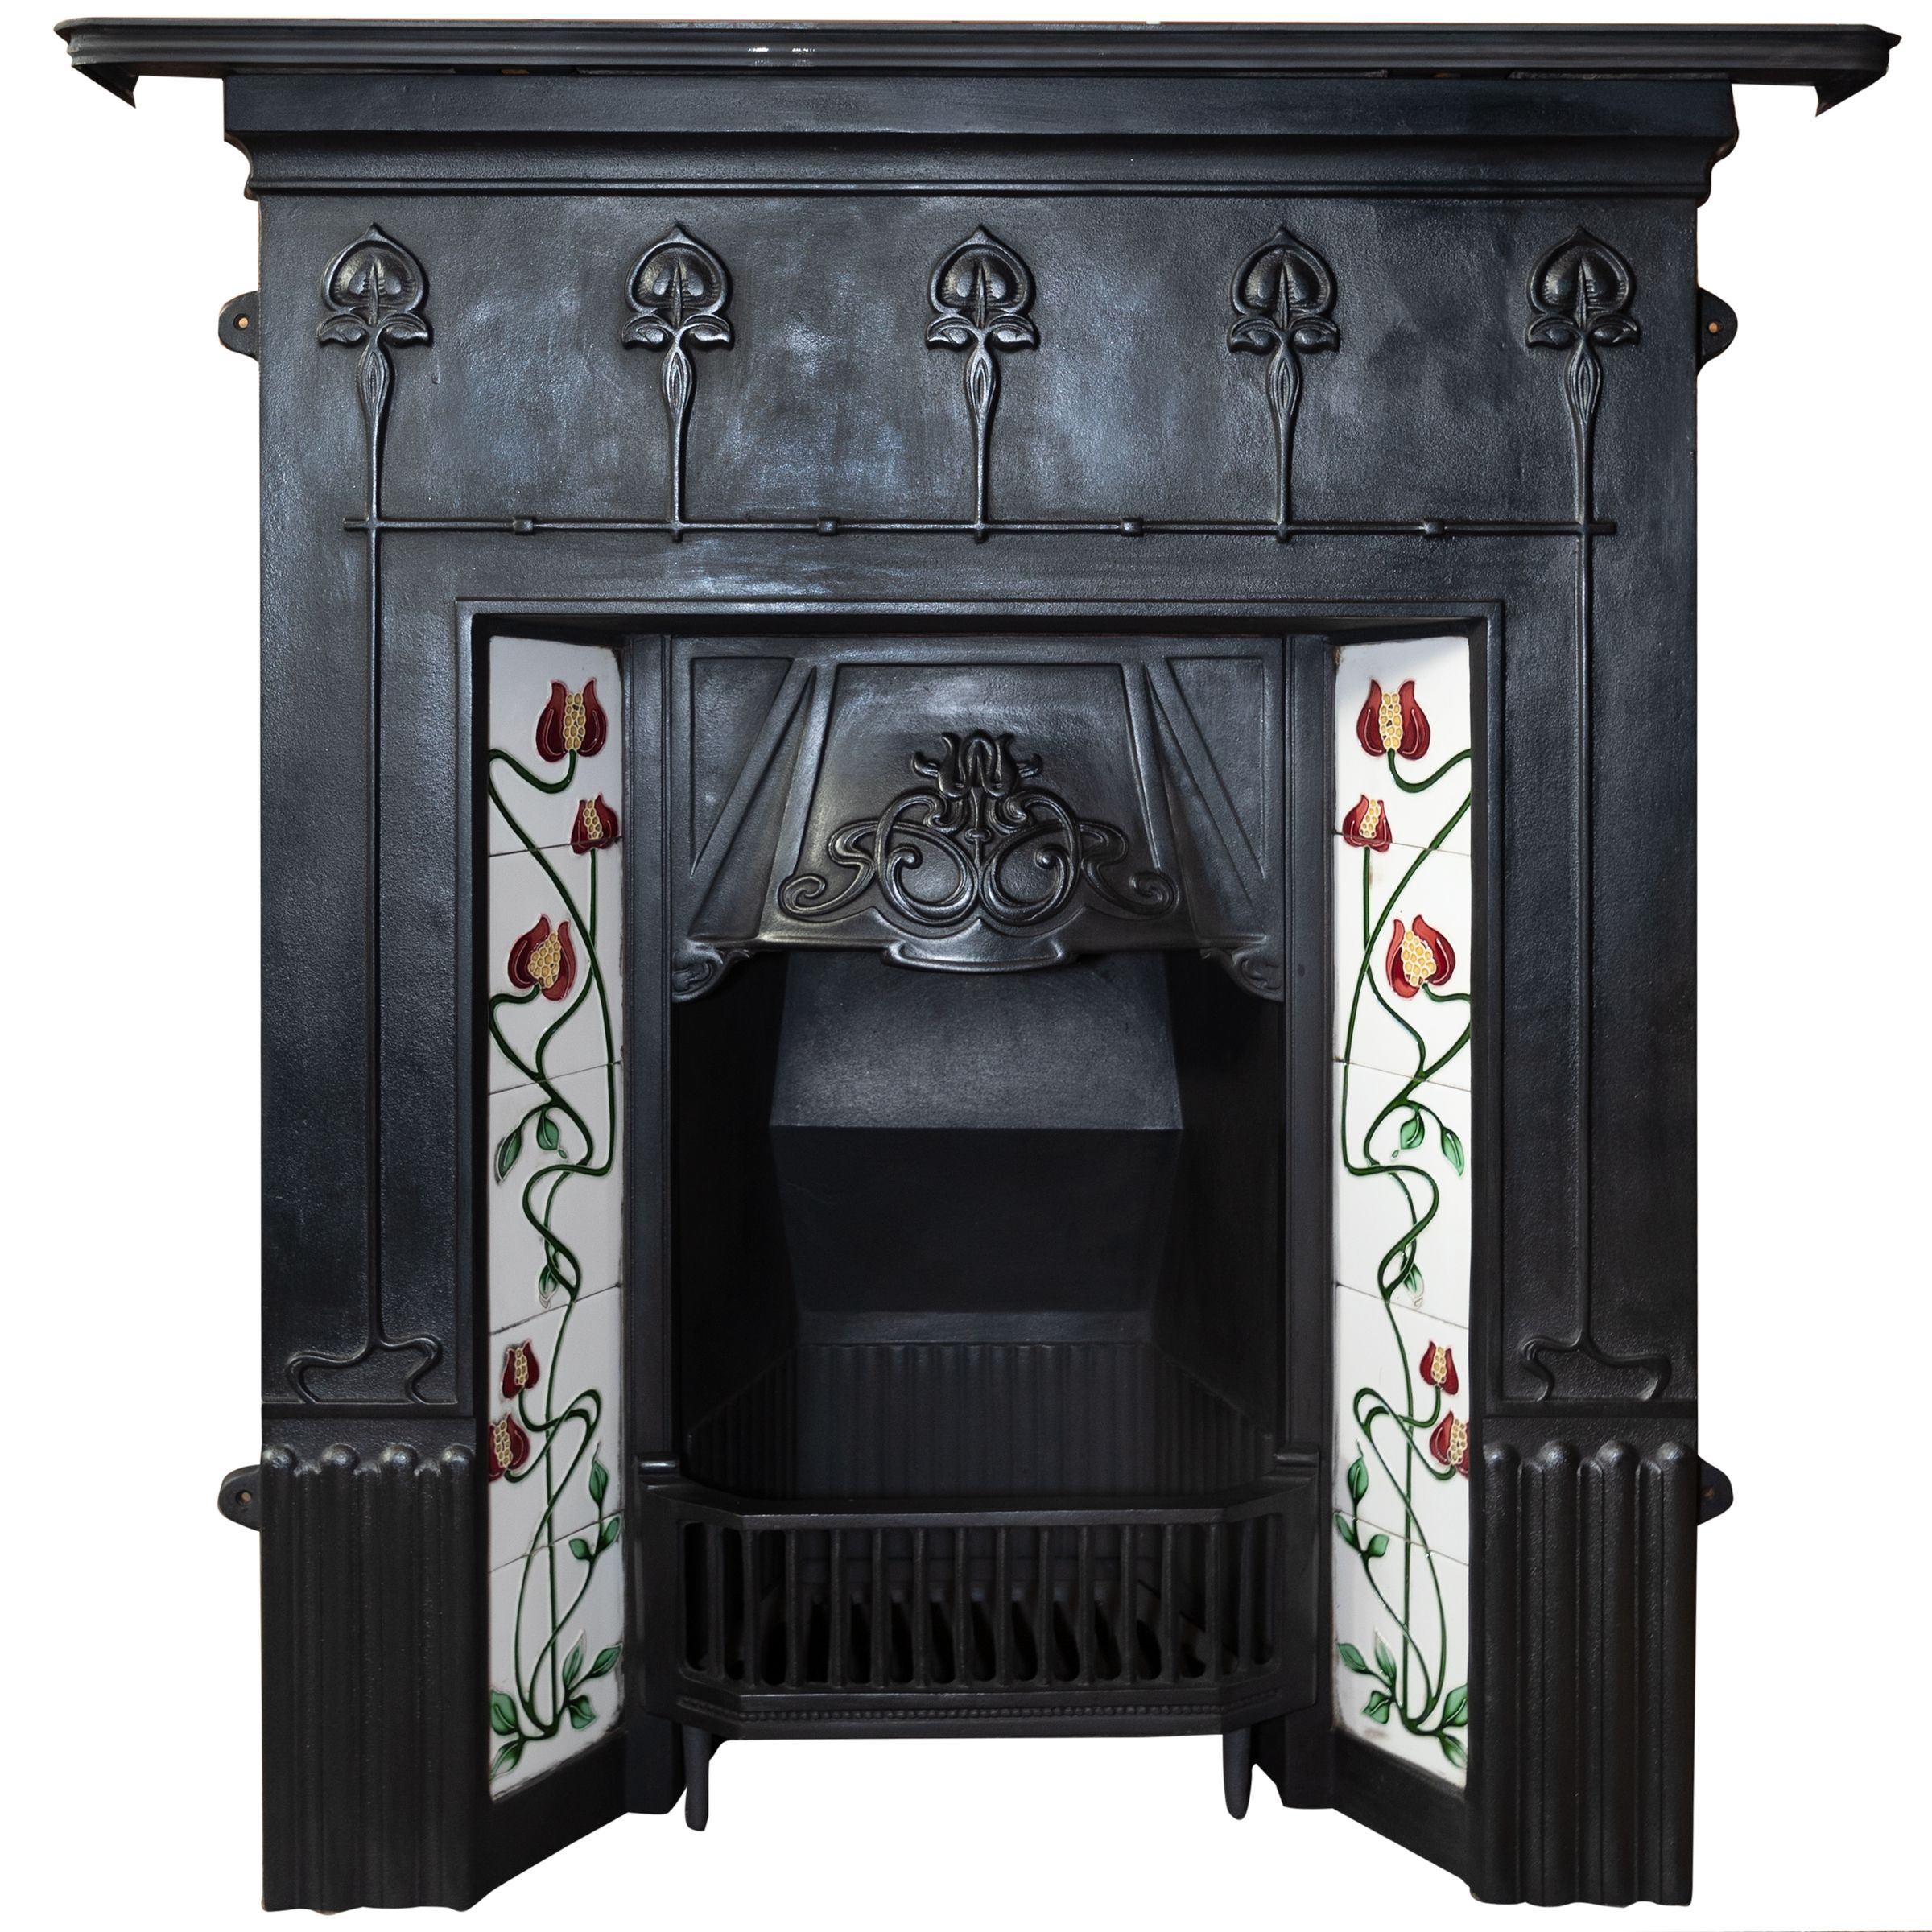 Art Deco Fireplace Inspirational Huge Selection Of Antique Cast Iron Fireplaces Fully